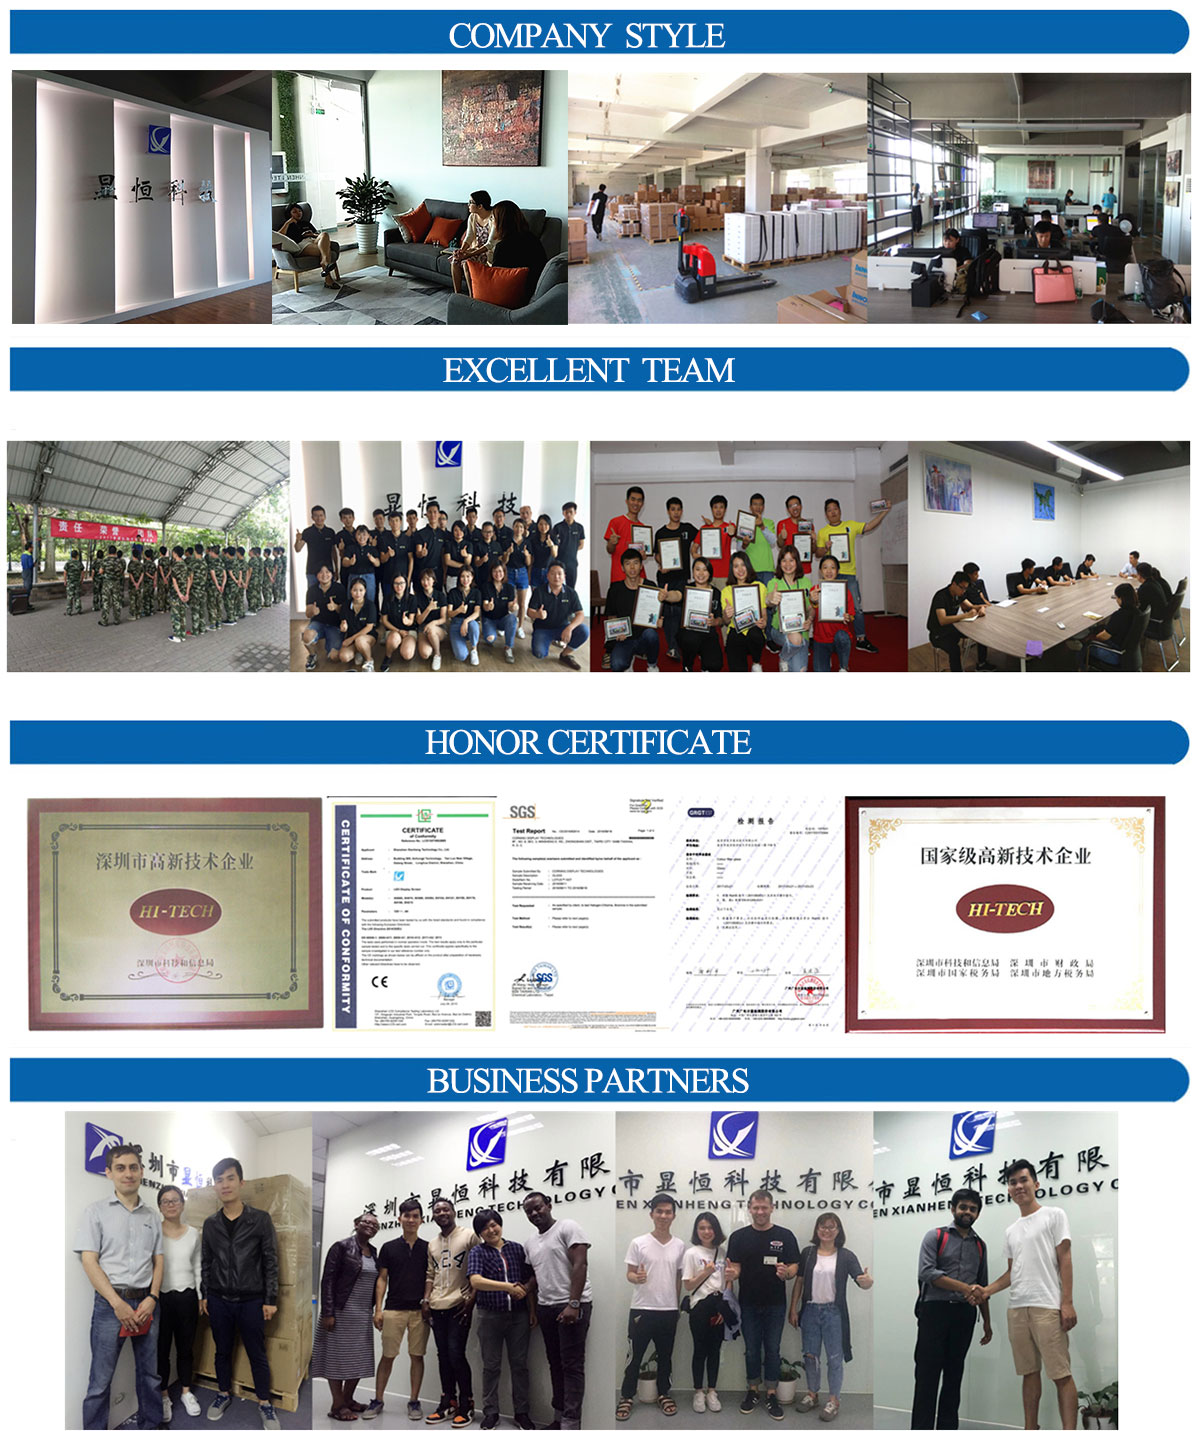 We mainly agent LCD screen distribution AUO, MITSUBISHI, BOE, INNOLUX and other brands and so on.According to customer needs to provide a variety of LCD products including supporting LCD, LCD driver board, resistance and capacitance touch screen, LCD dedicated wire, the production of small and medium-size industrial monitors, touch screen, etc.